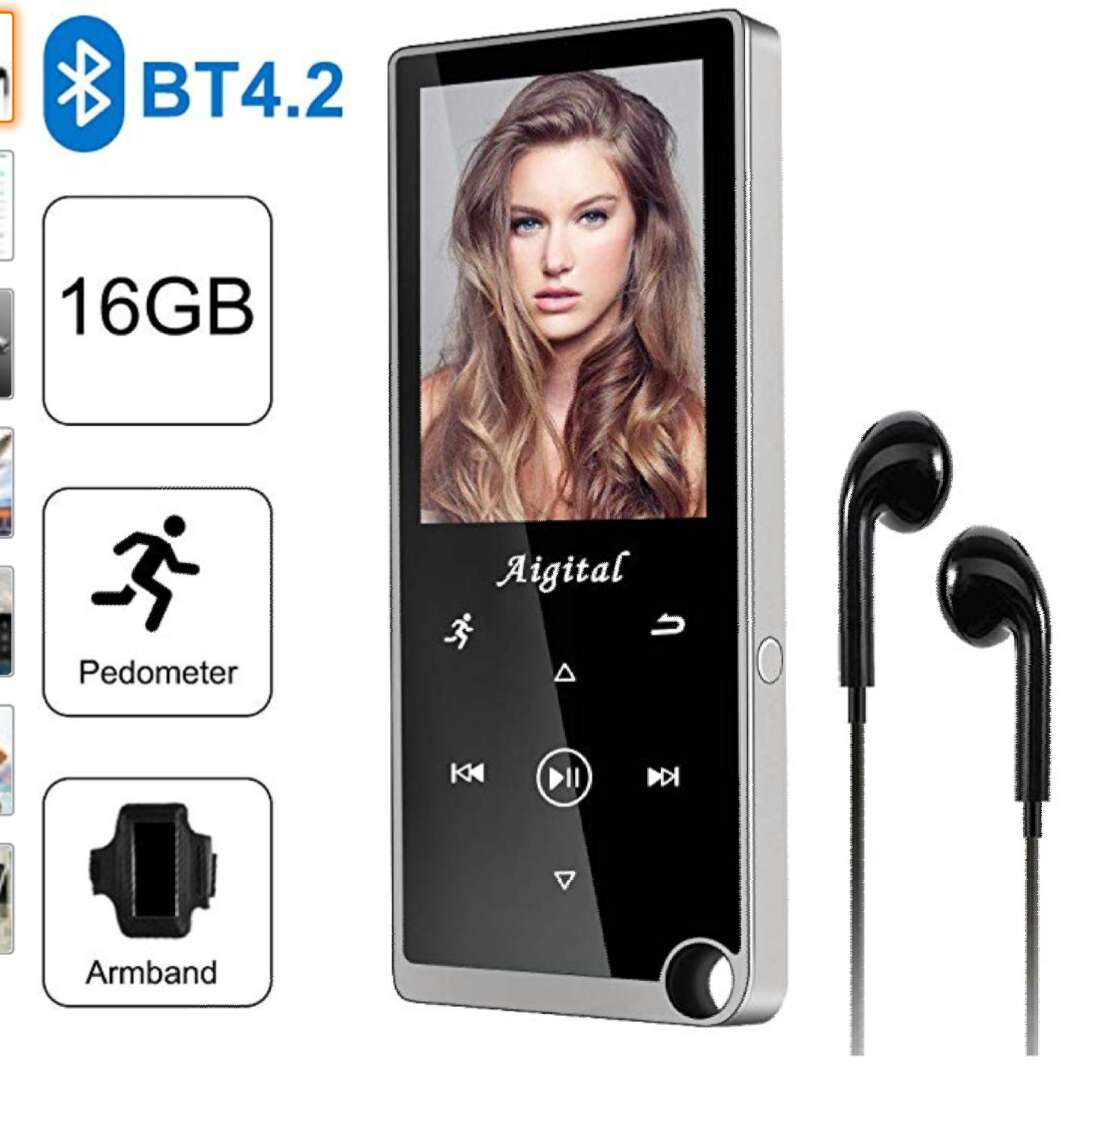 Imagen reproductor mp3 Bluetooth